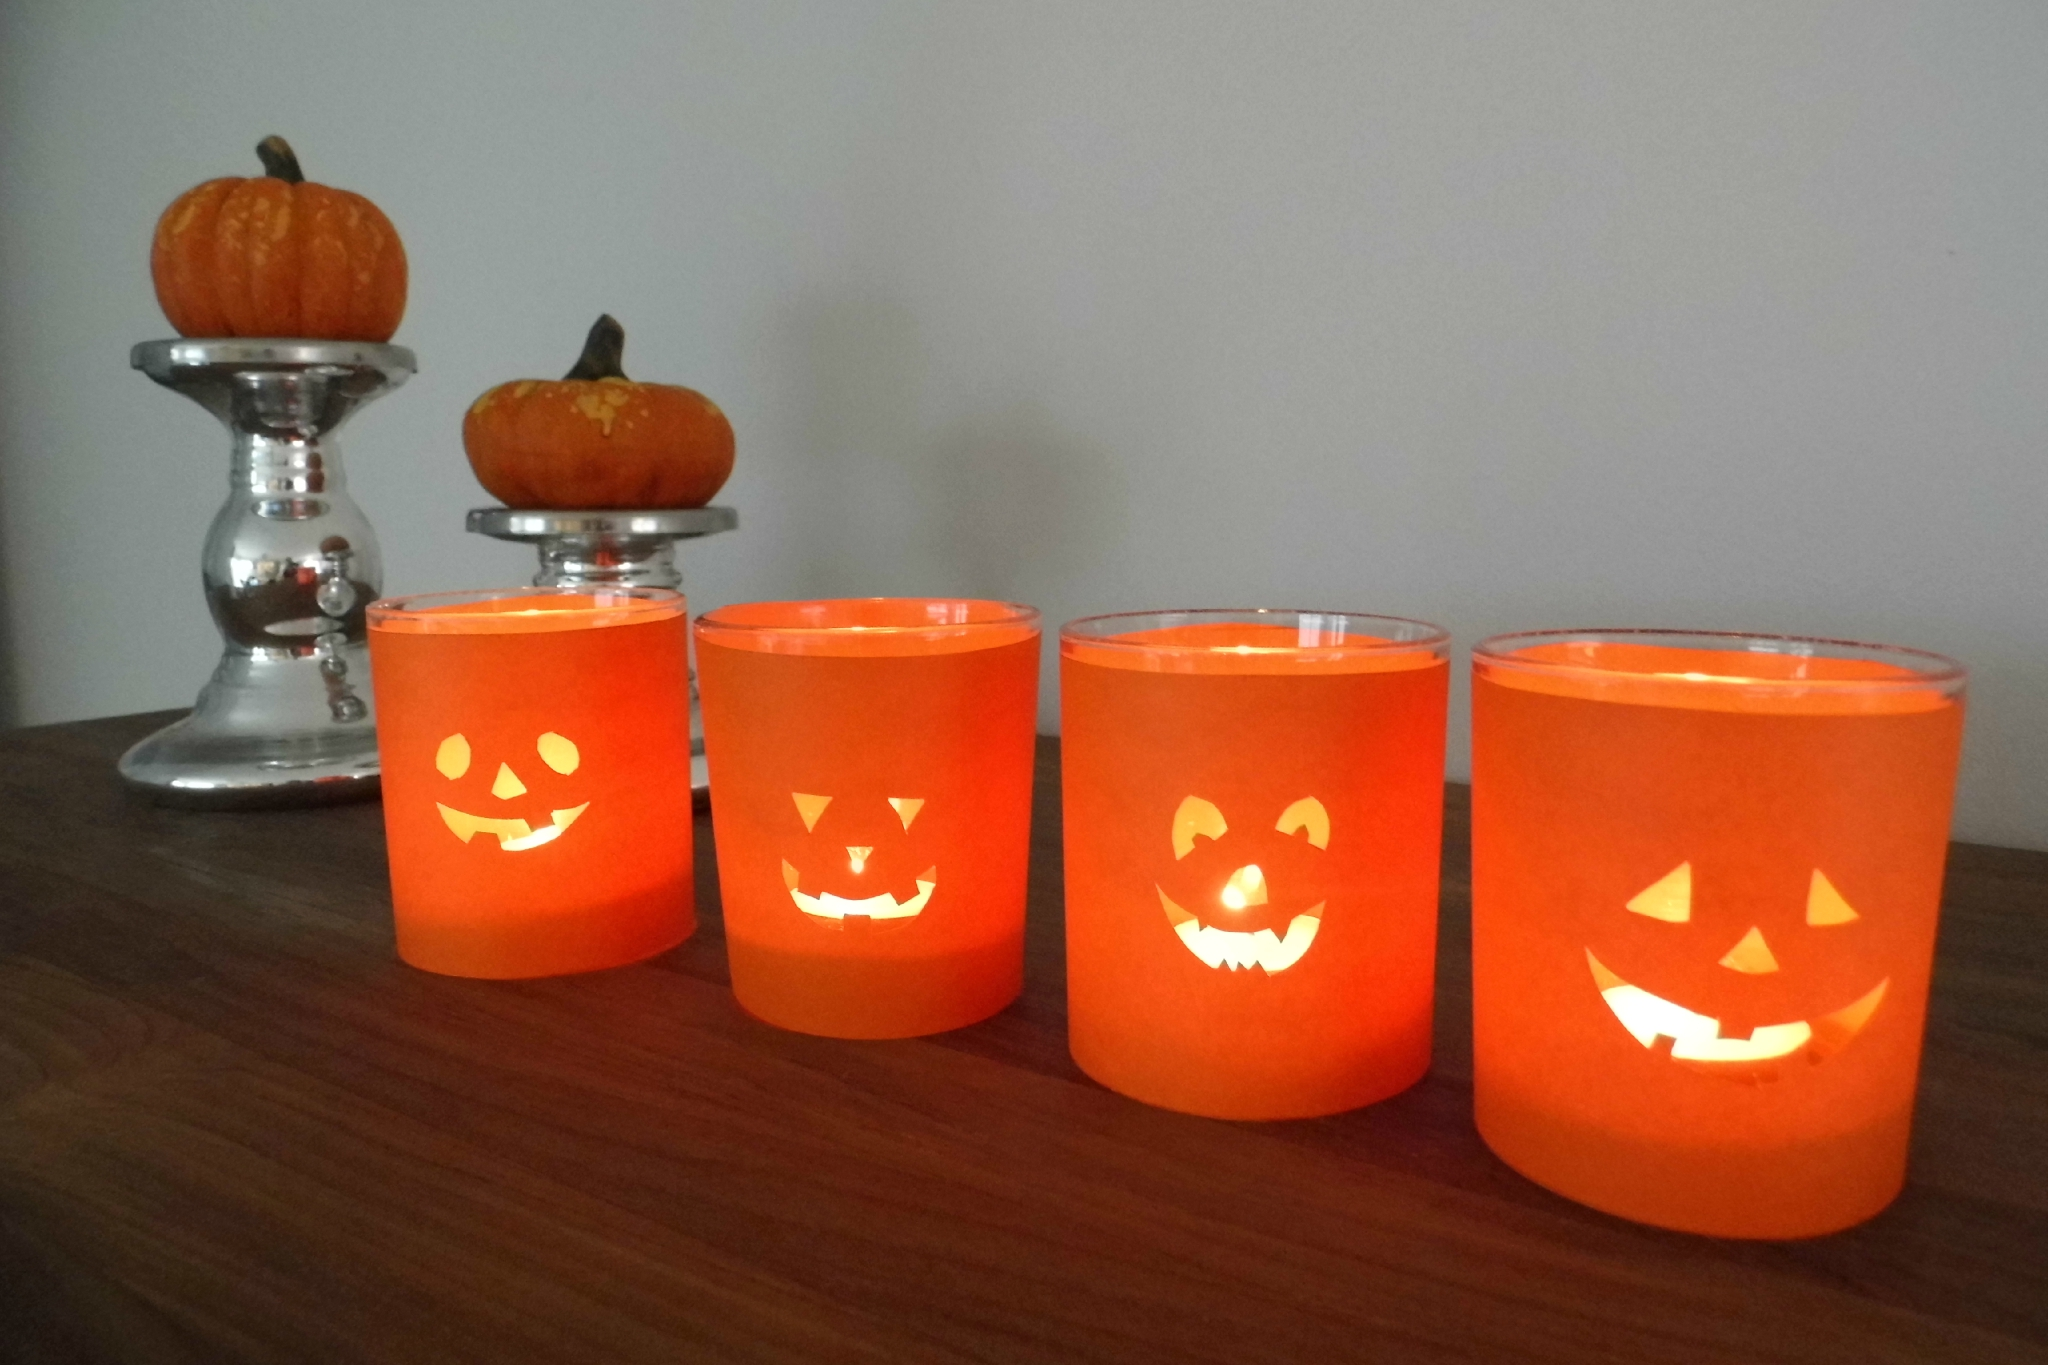 Idee deco halloween faire soi meme - Deco de table halloween a faire soi meme ...